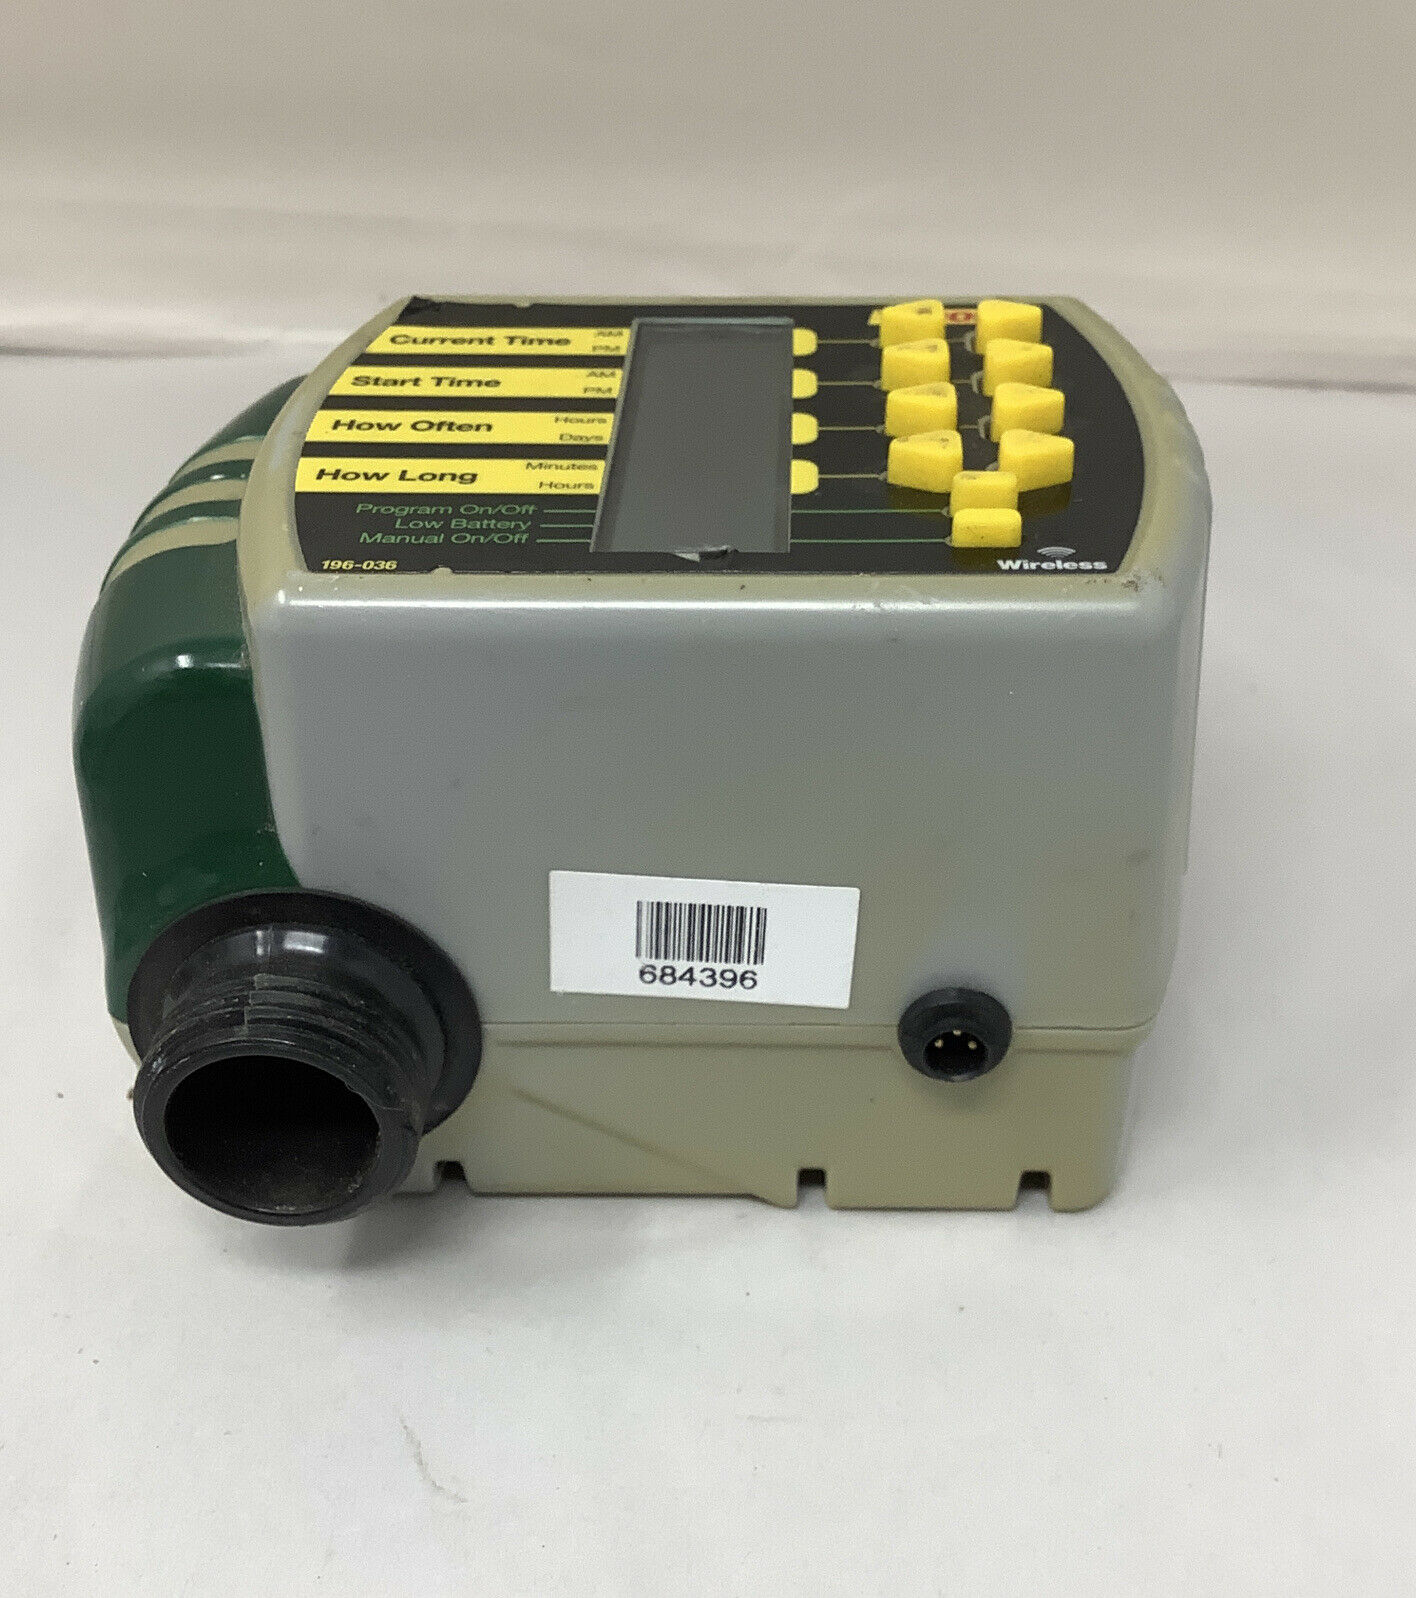 Melnor Aqua Timer Automatic 1 Outlet Water Timer Battery Powered 558-026 3015